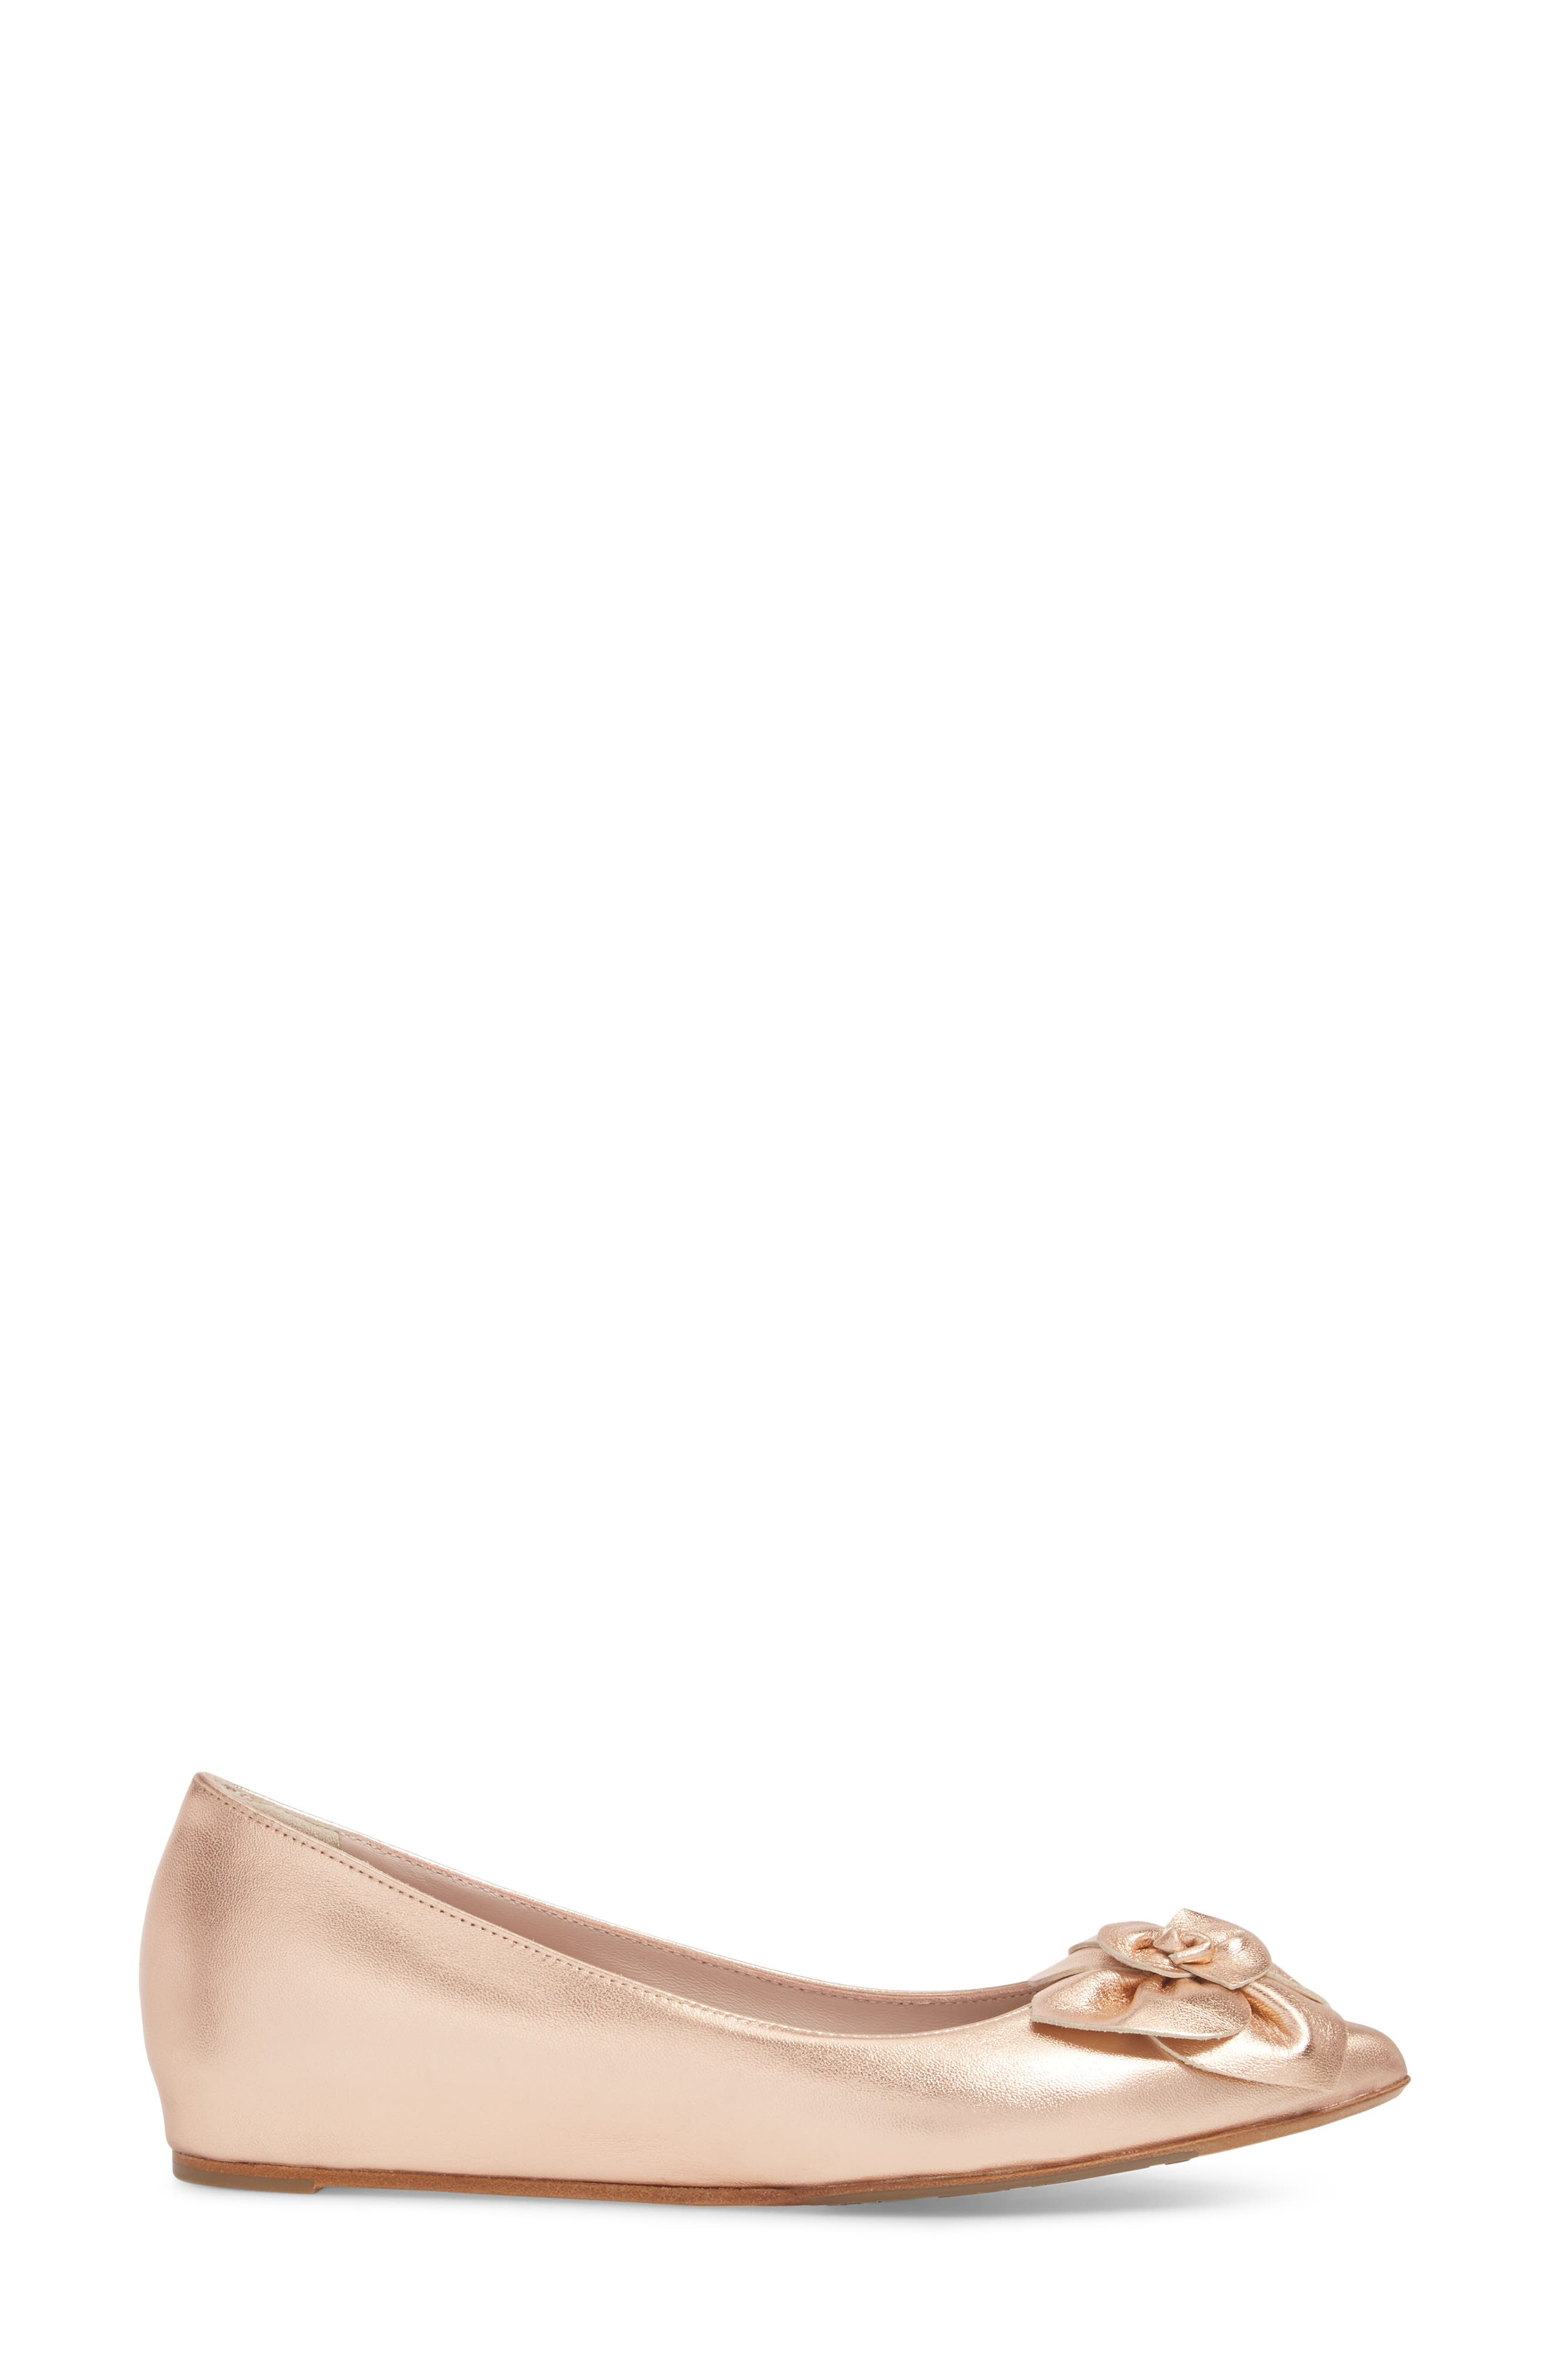 Rialta Flat,                             Alternate thumbnail 3, color,                             Rose Gold Leather